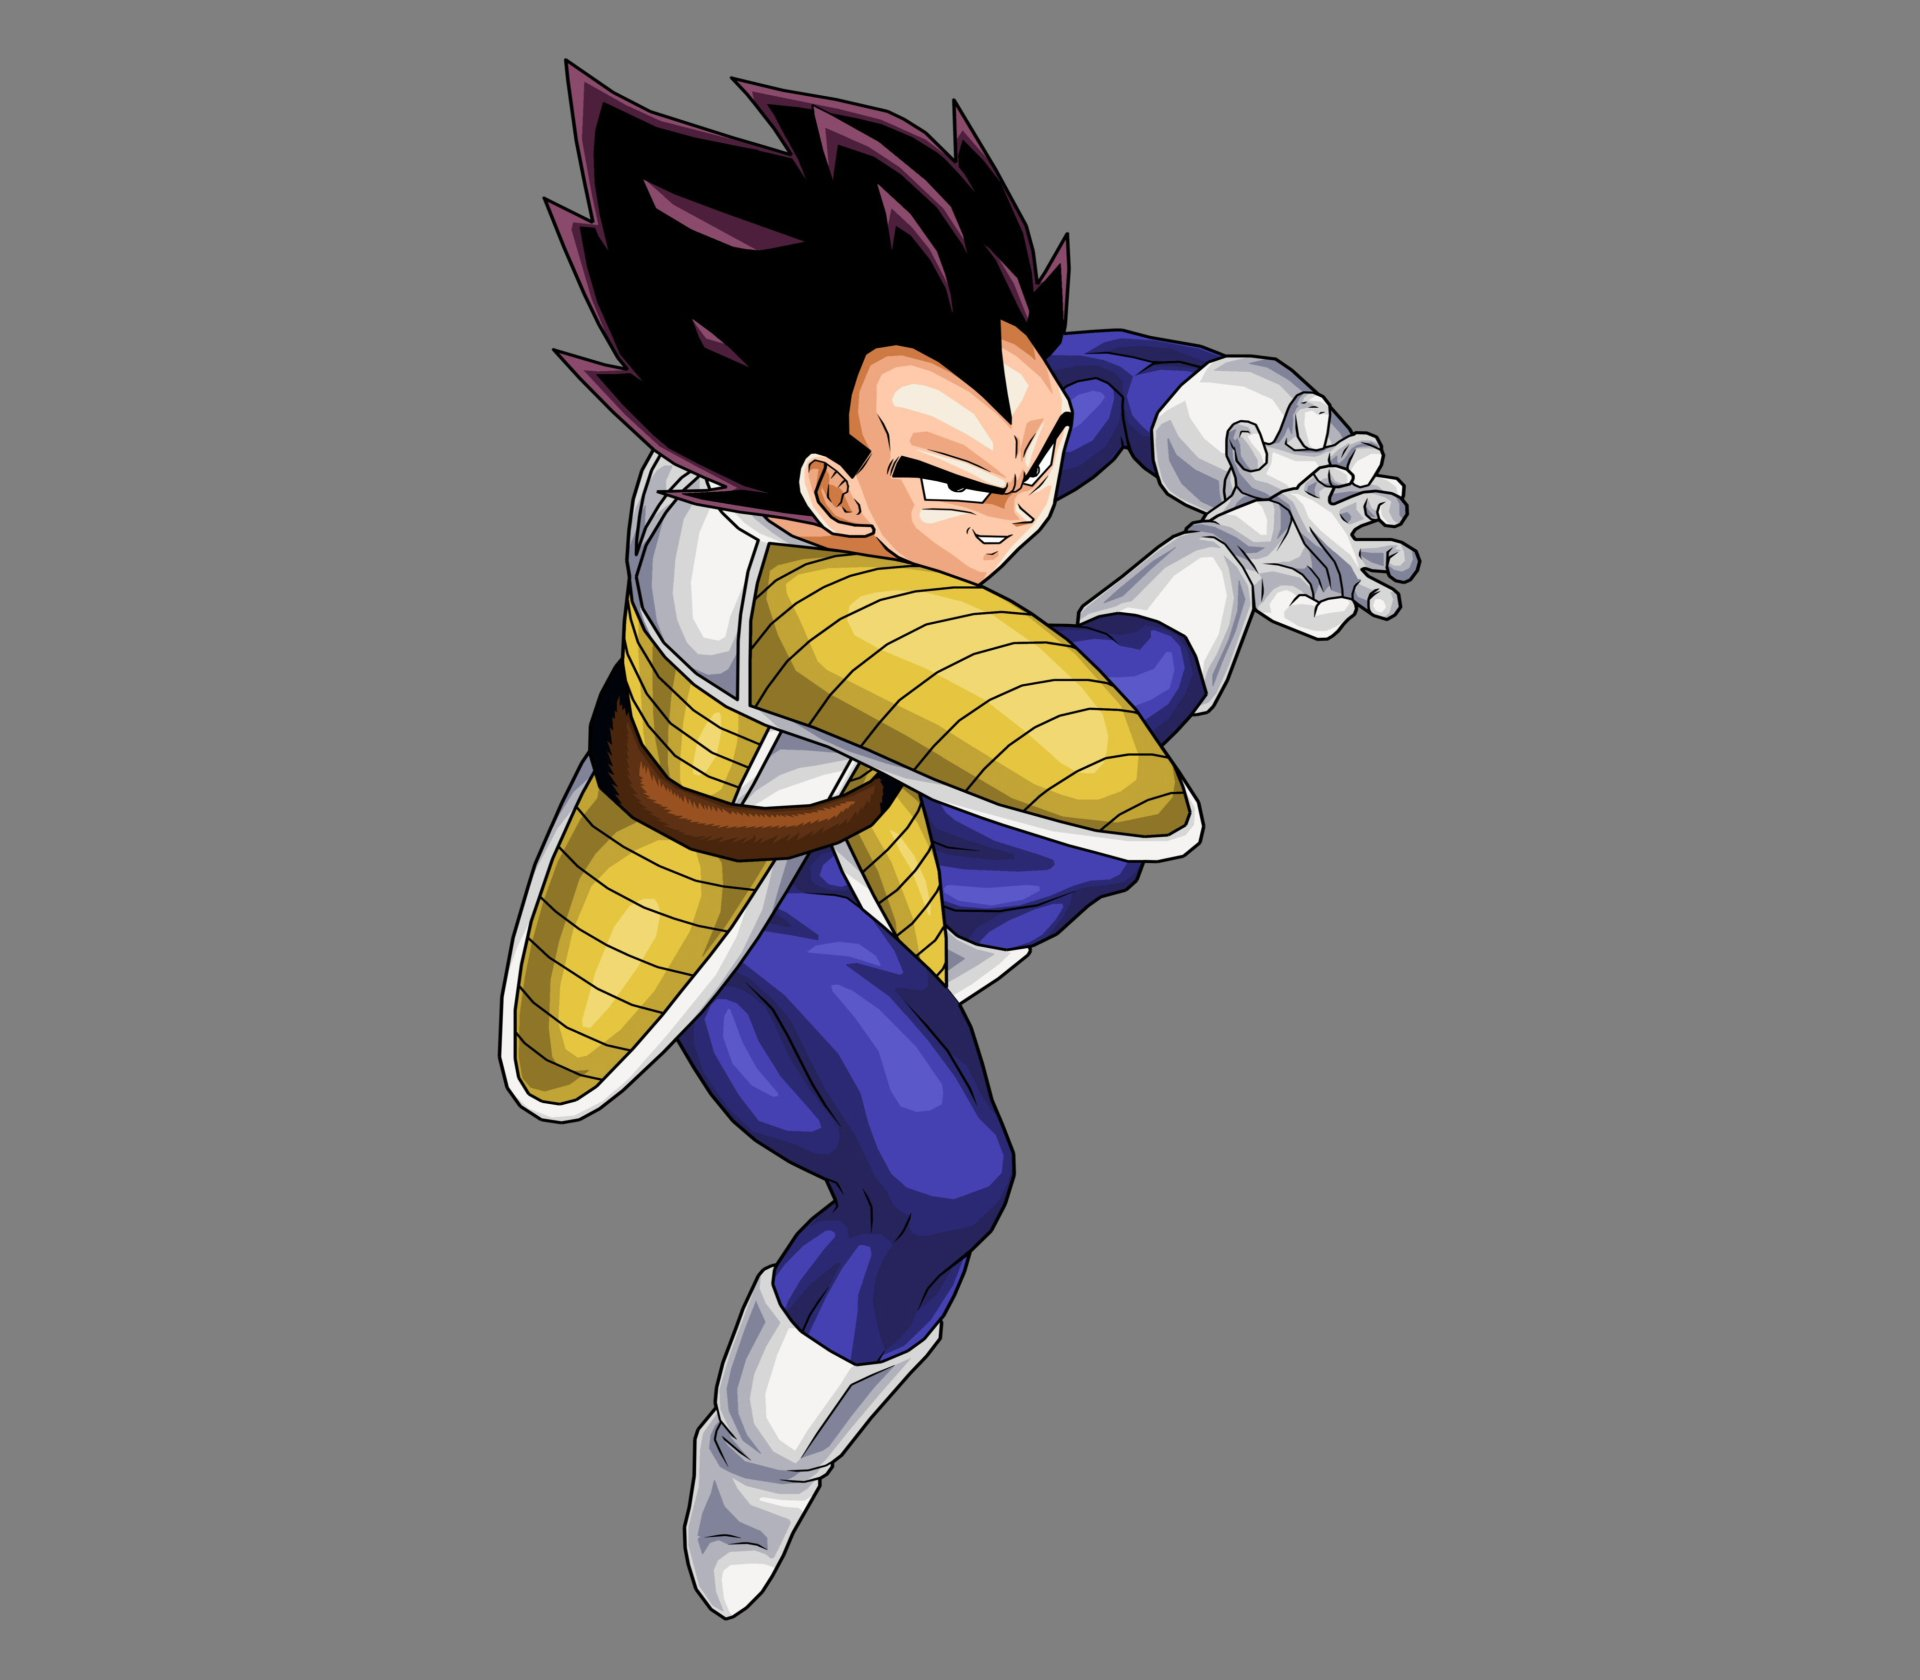 Vegeta 4k Ultra HD Wallpaper And Background Image